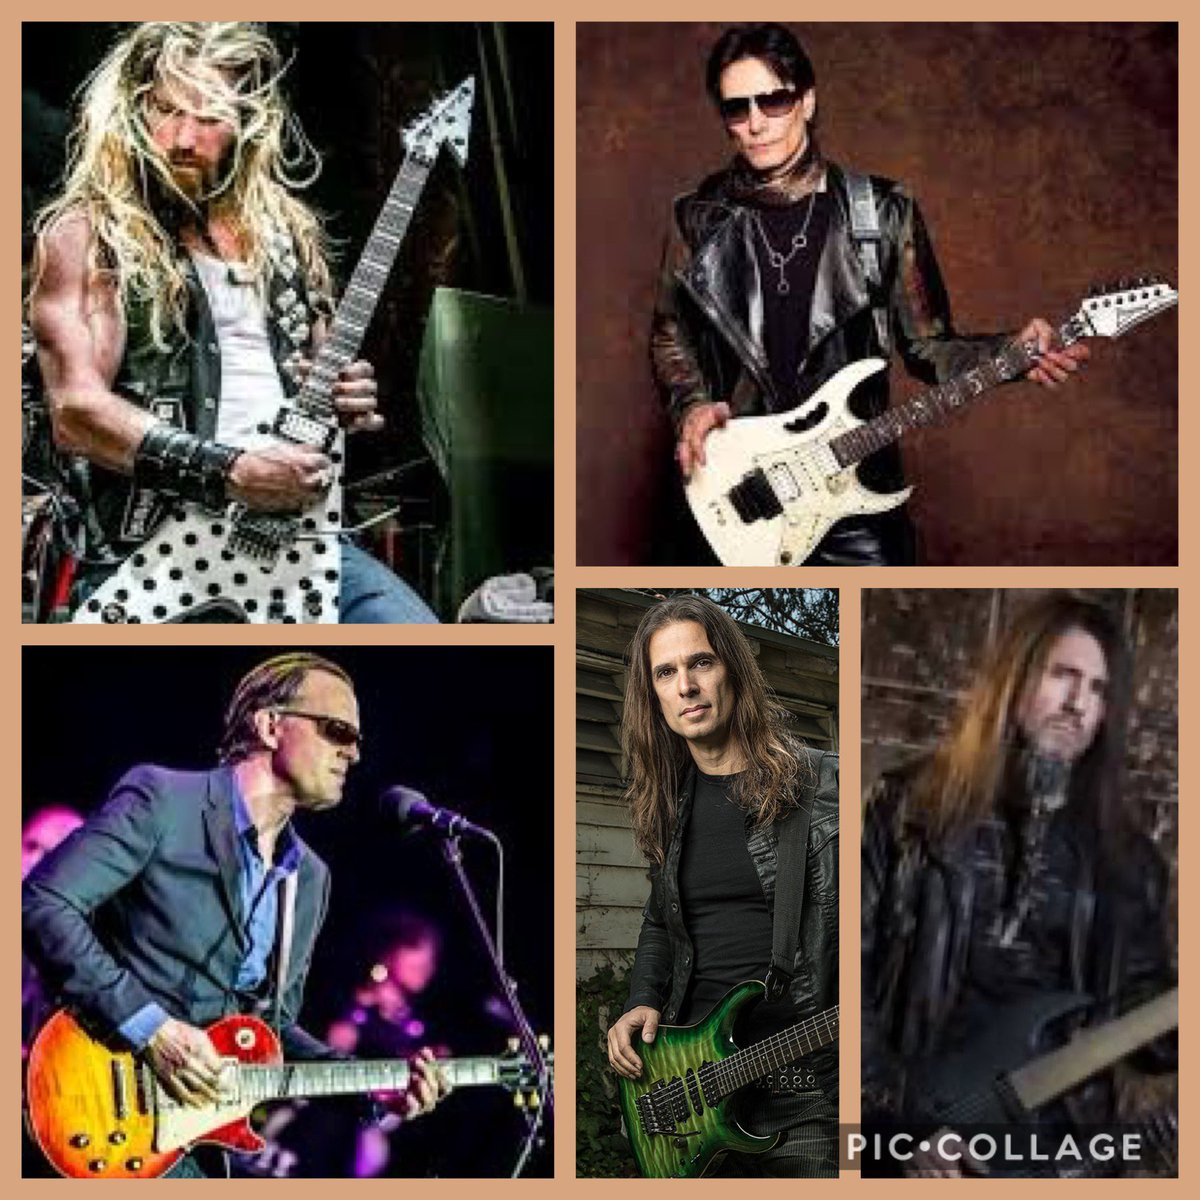 "THE GUITAR RECORD OF THE YEAR!  STEVE VAI• JOE BONAMASSA• ZAKK WYLDE• KIKO LOUREIRO• BUMBLEFOOT Pre- order ""The Phoenix"" here https://t.co/Z3QFaEraJP @stevevaihimself @ZakkWyldeBLS @KikoLoureiro @JBONAMASSA @bumblefoot @guitarworldmagazine https://t.co/OihEWWR02n"